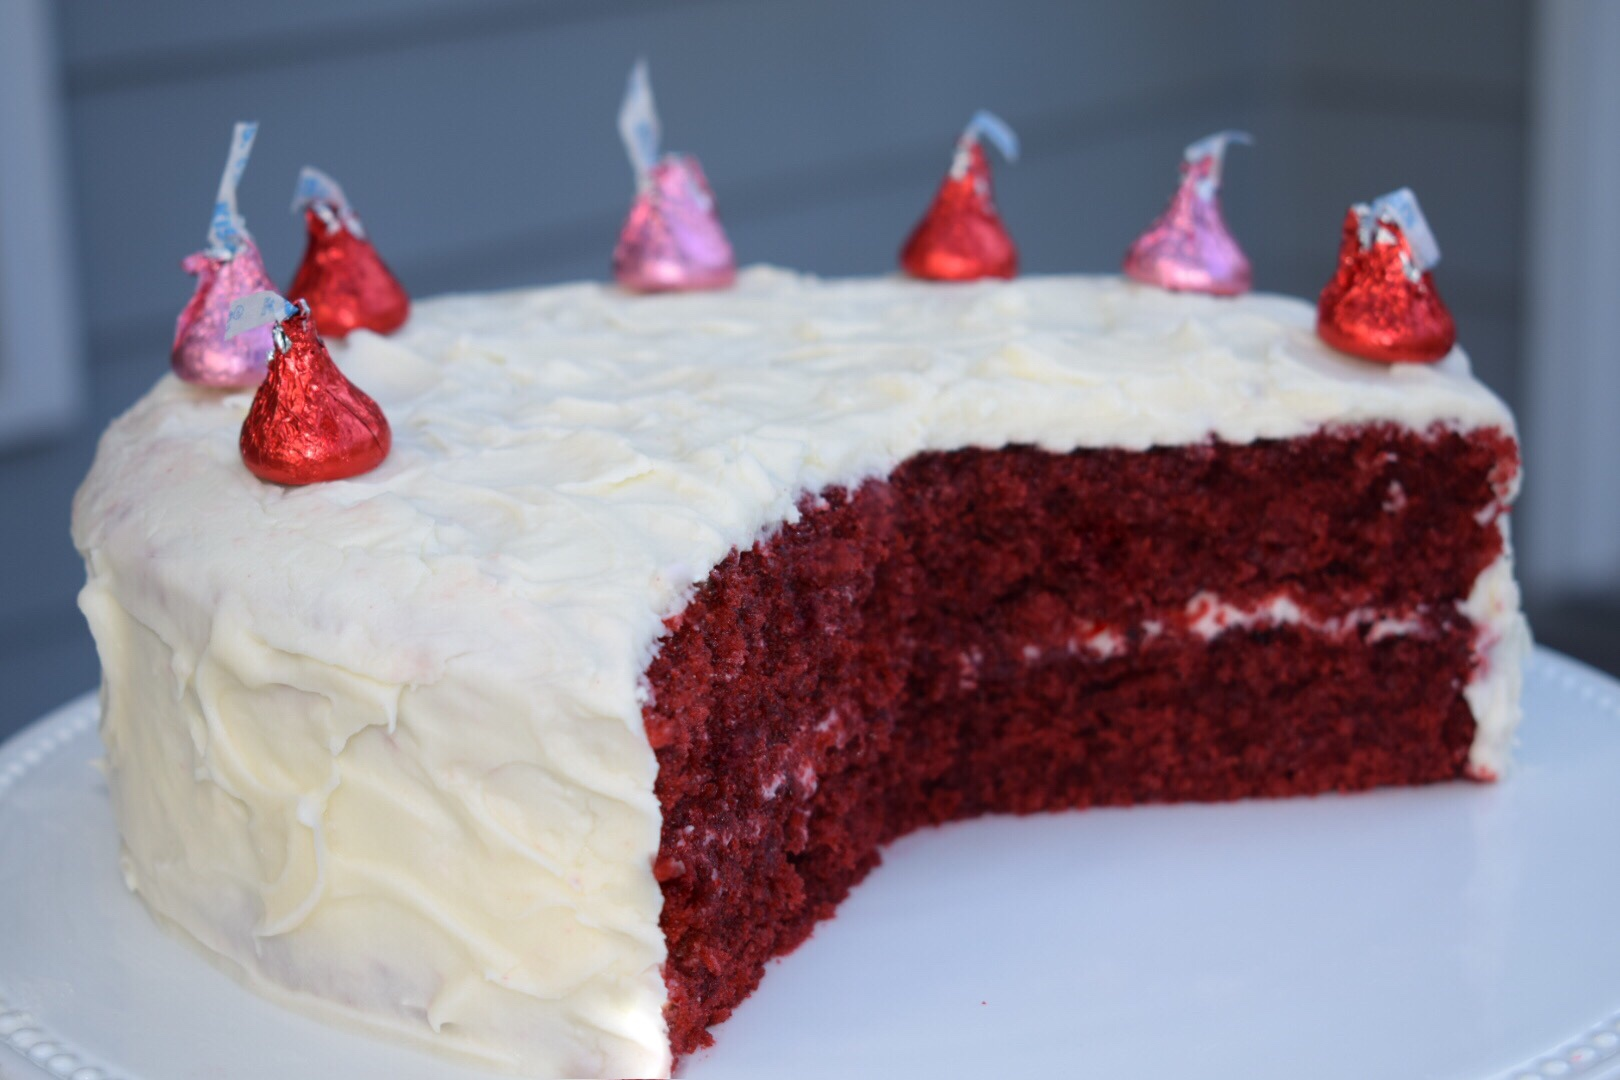 Red Velvet Cake cut into with white cream cheese frosting and topped with pink and red chocolate Hershey kisses